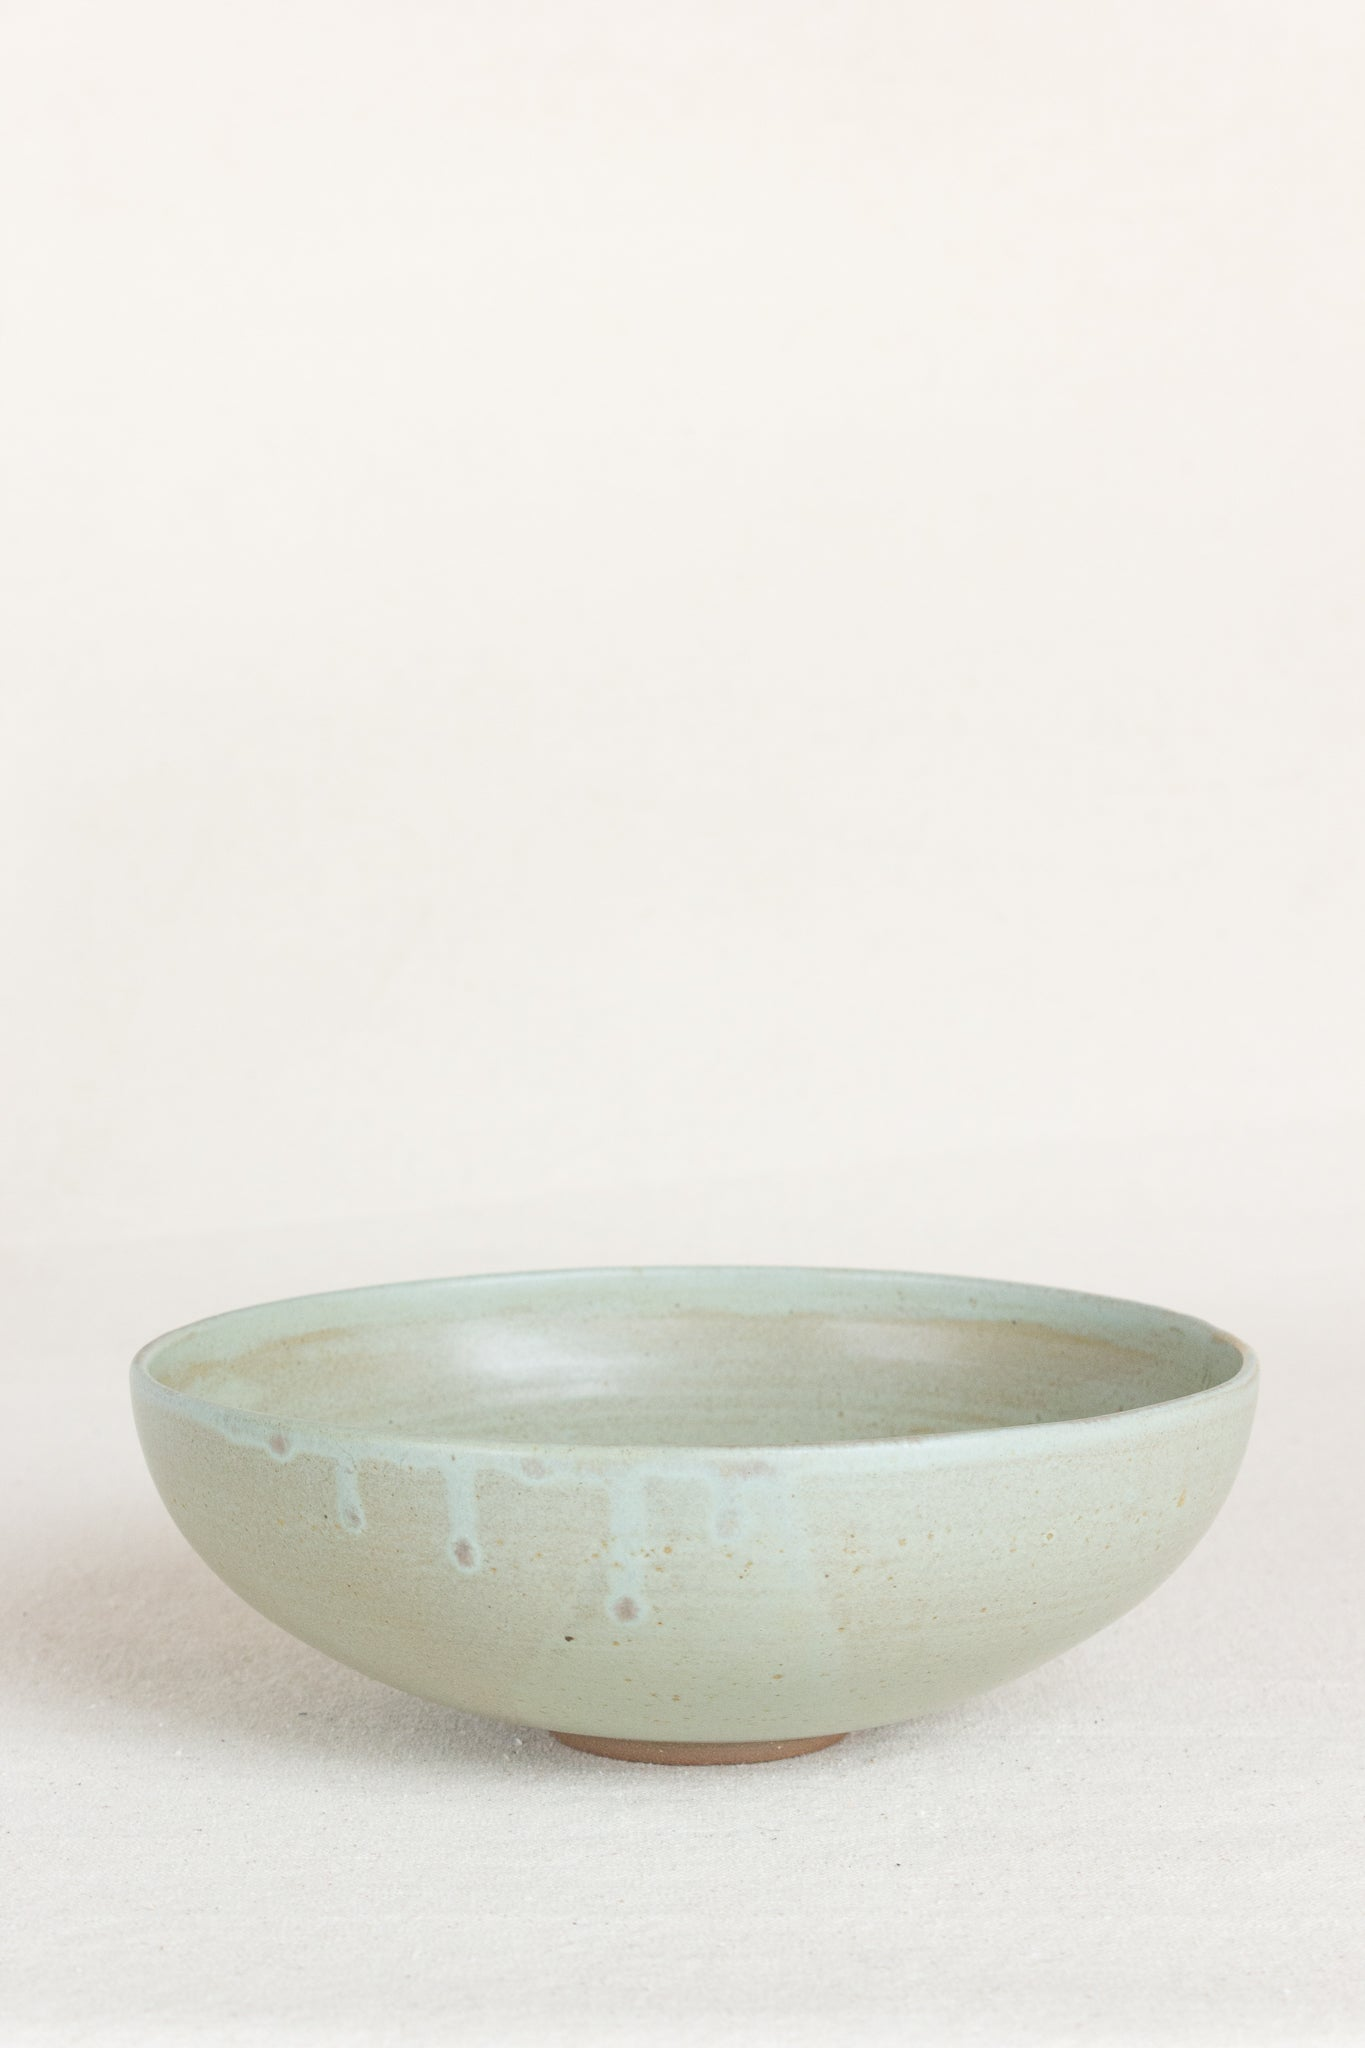 Bowl in Jade